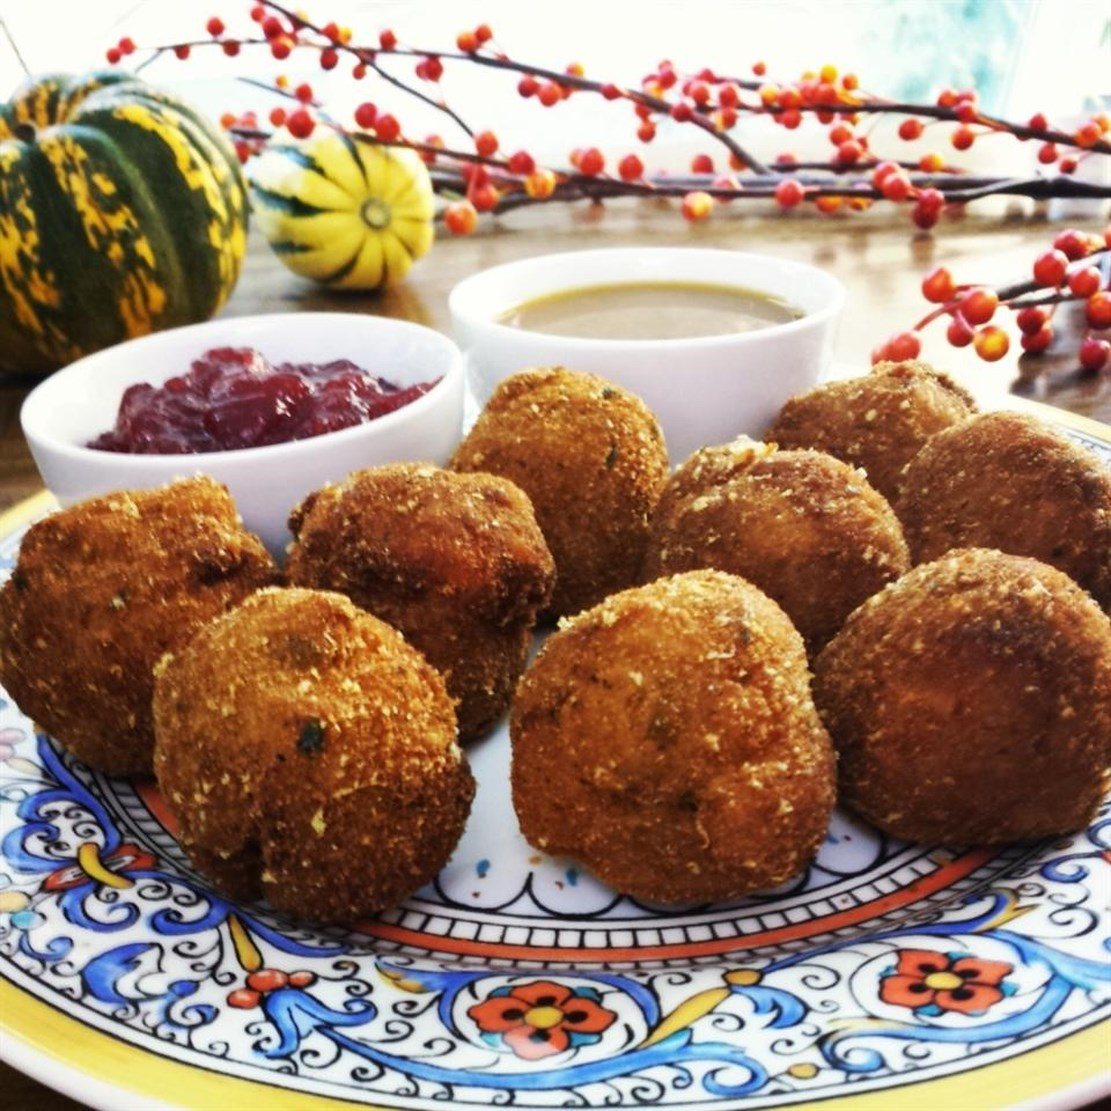 deep fried stuffing balls on a decorative plate with cranberry sauce for dipping